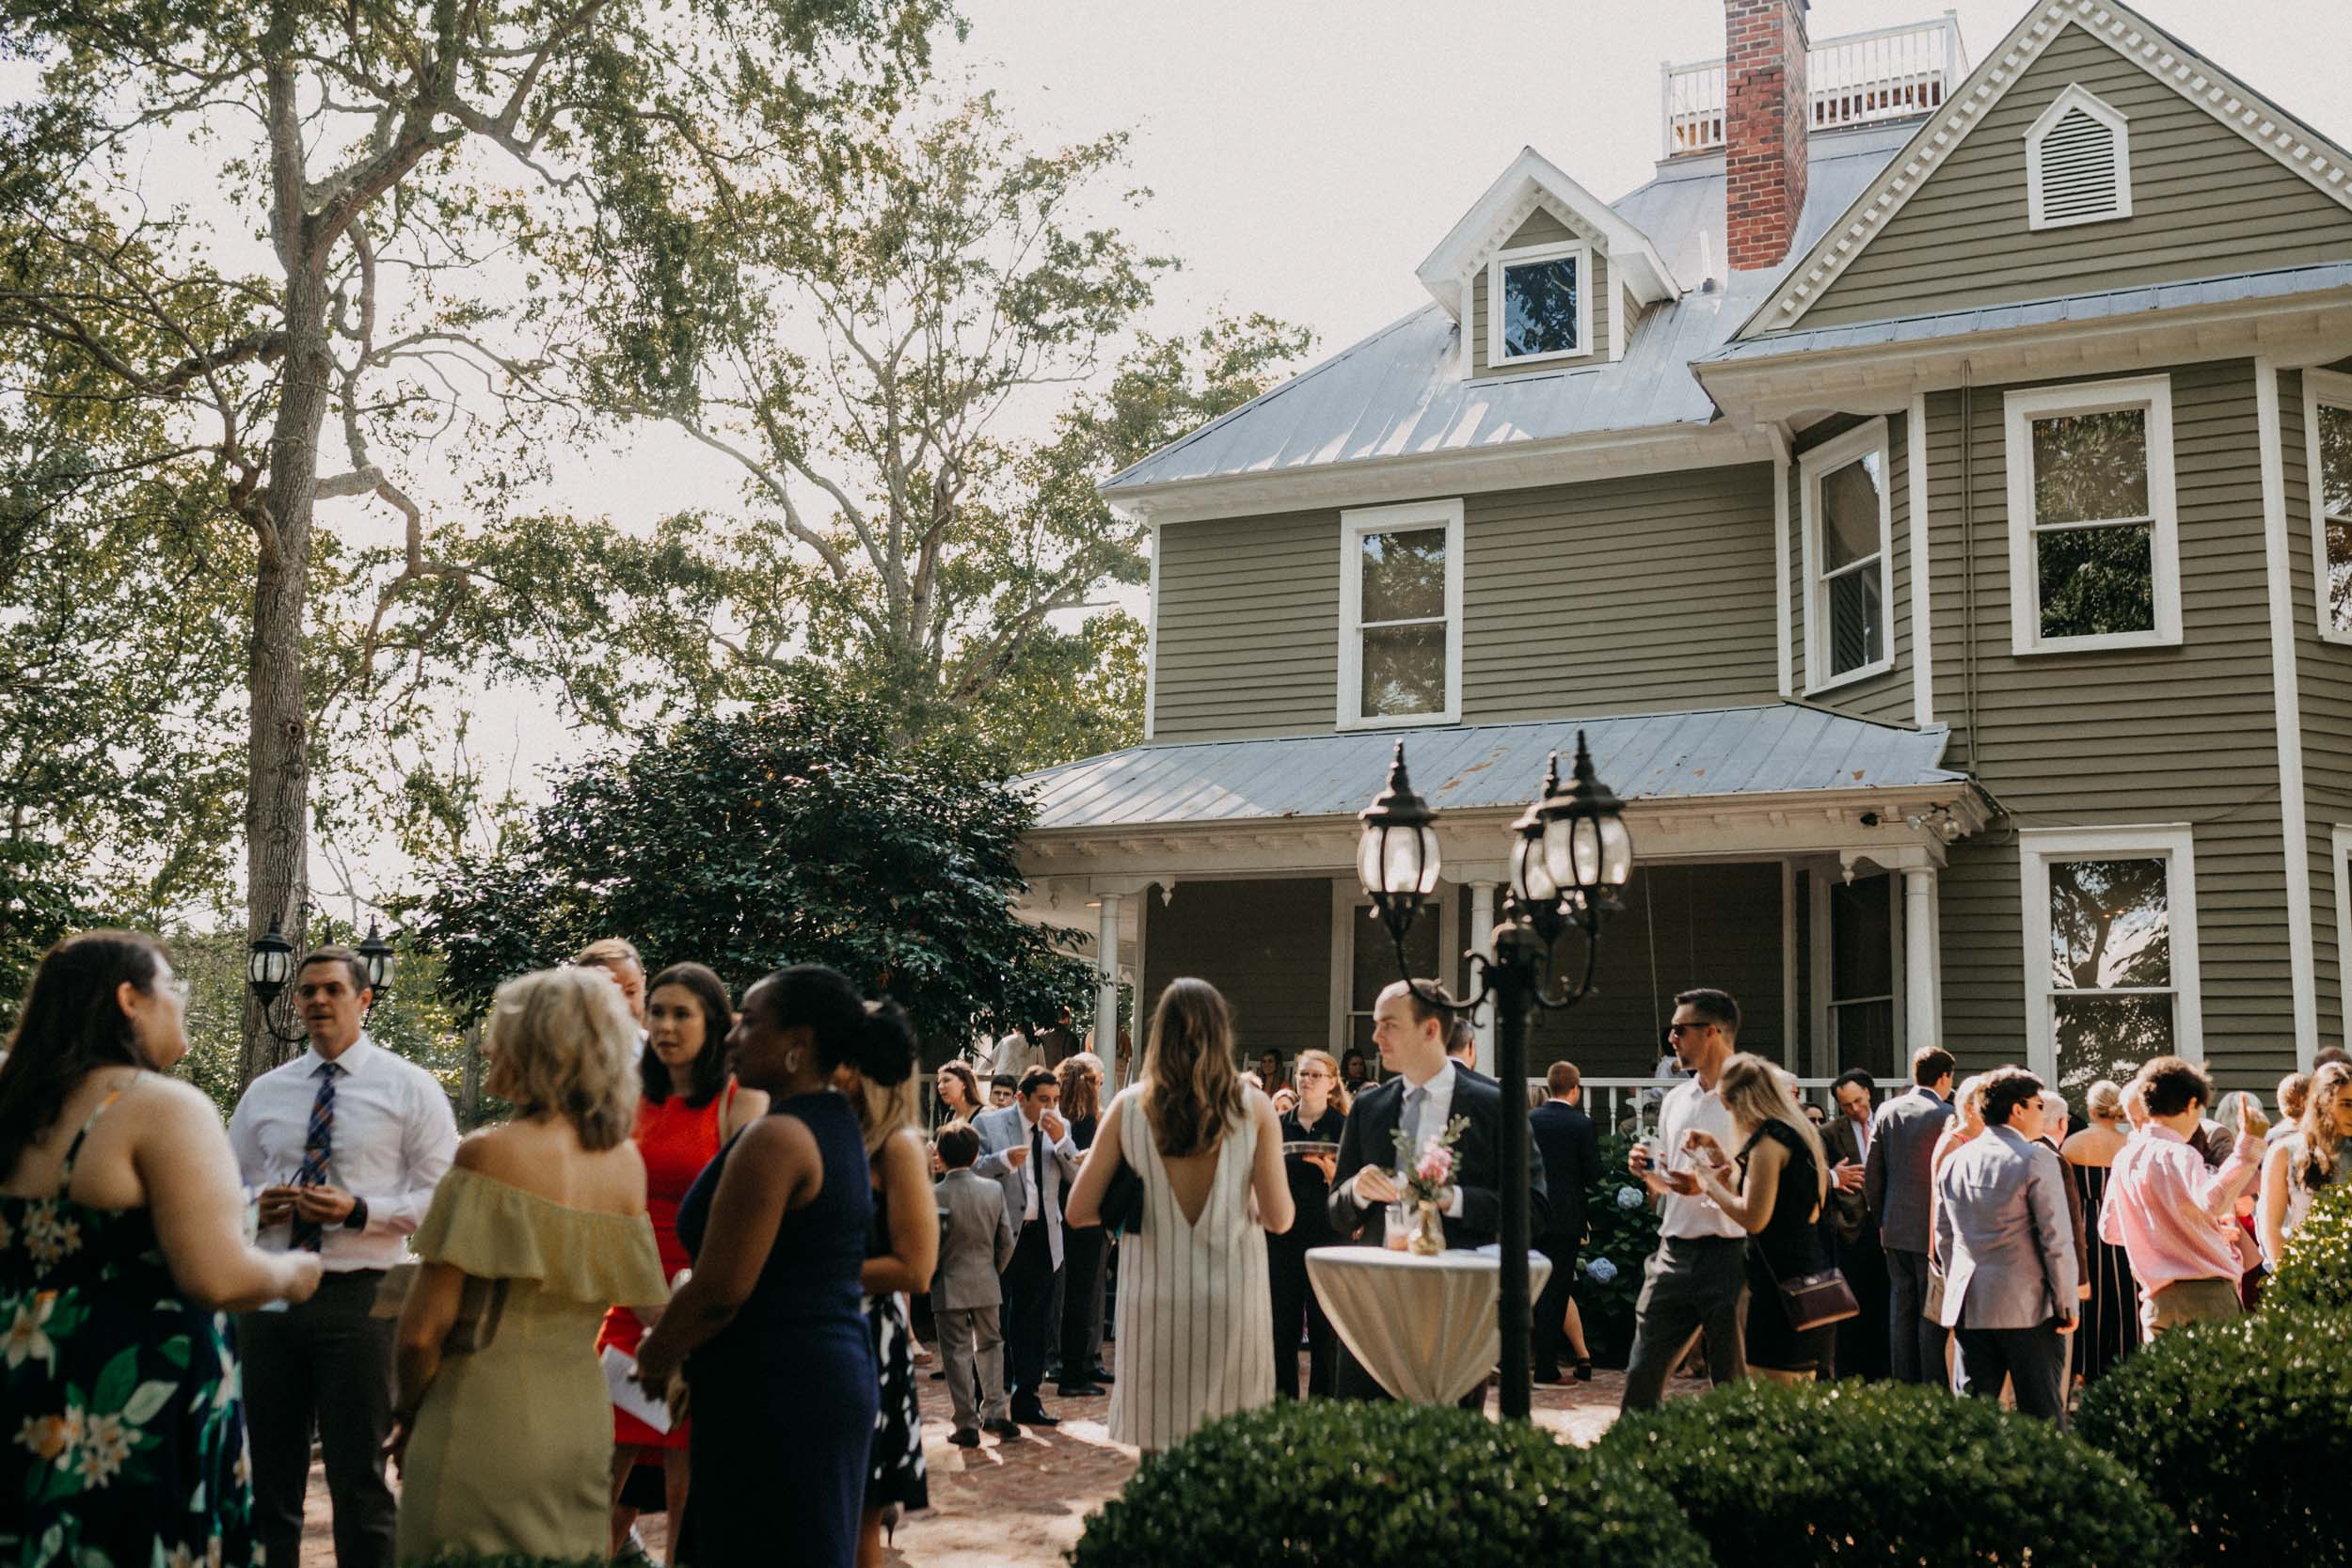 whitehead-manor-wedding-charlotte-nc-shellie-jarrett087.jpg